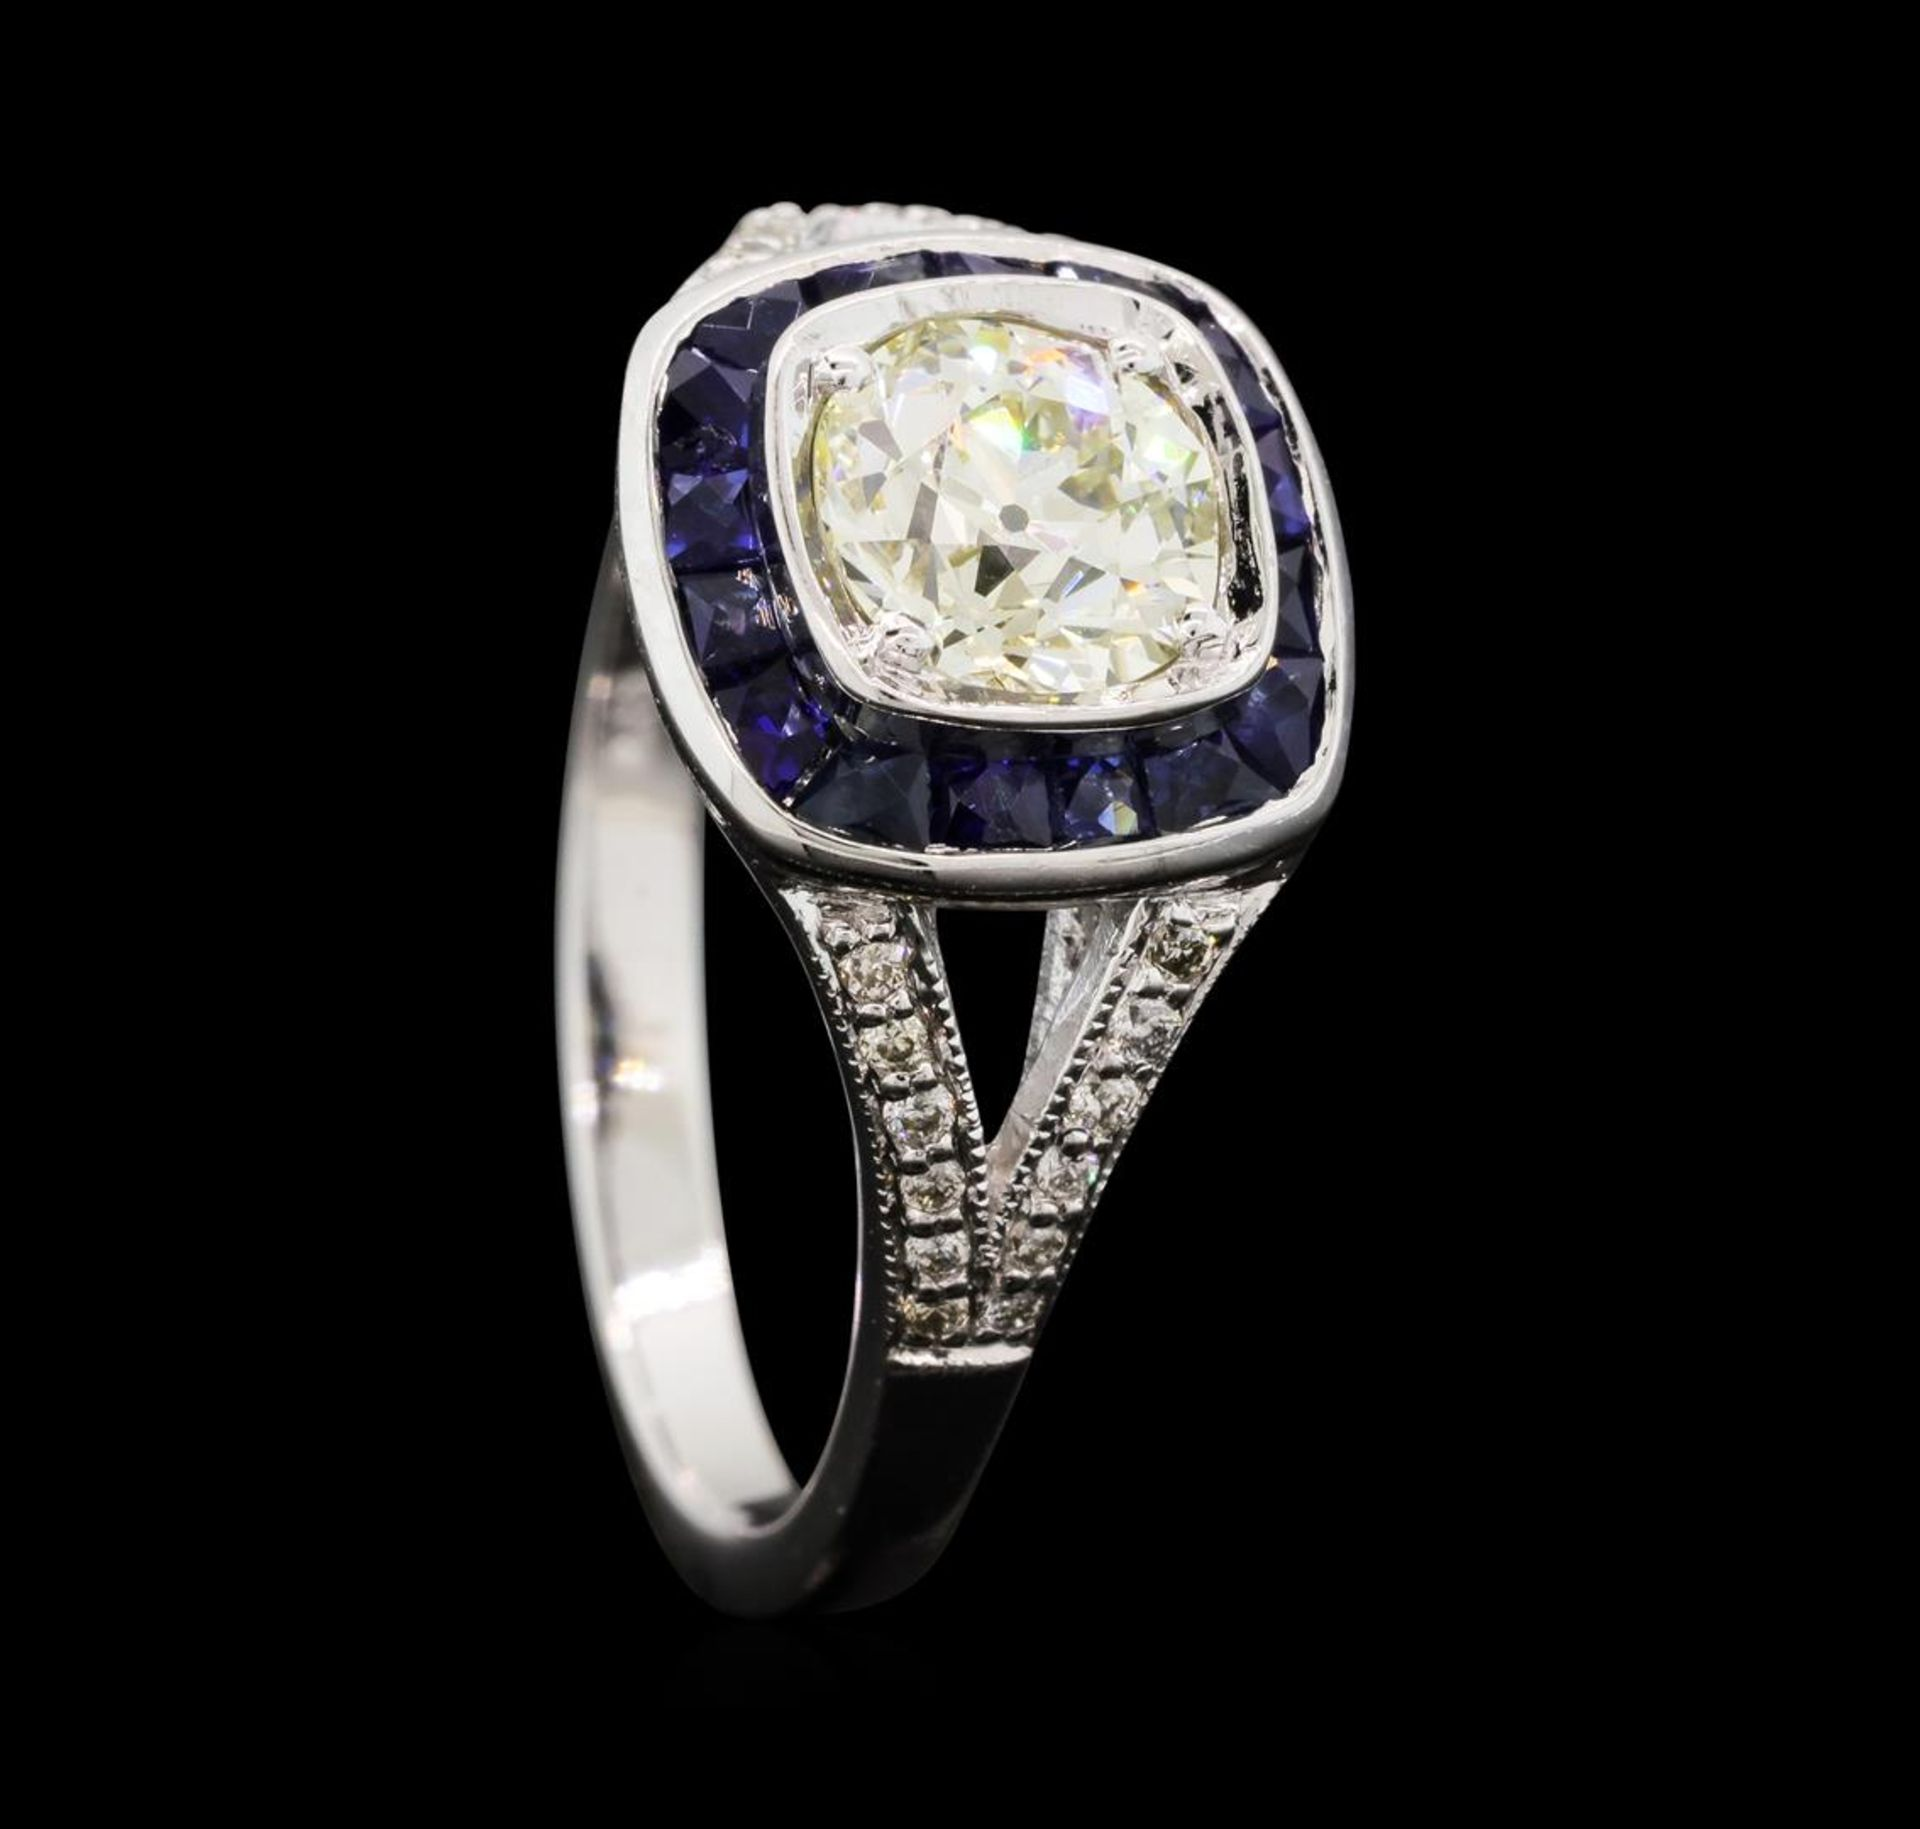 1.05 ctw Diamond And Sapphire Ring - 18KT White Gold - Image 4 of 5